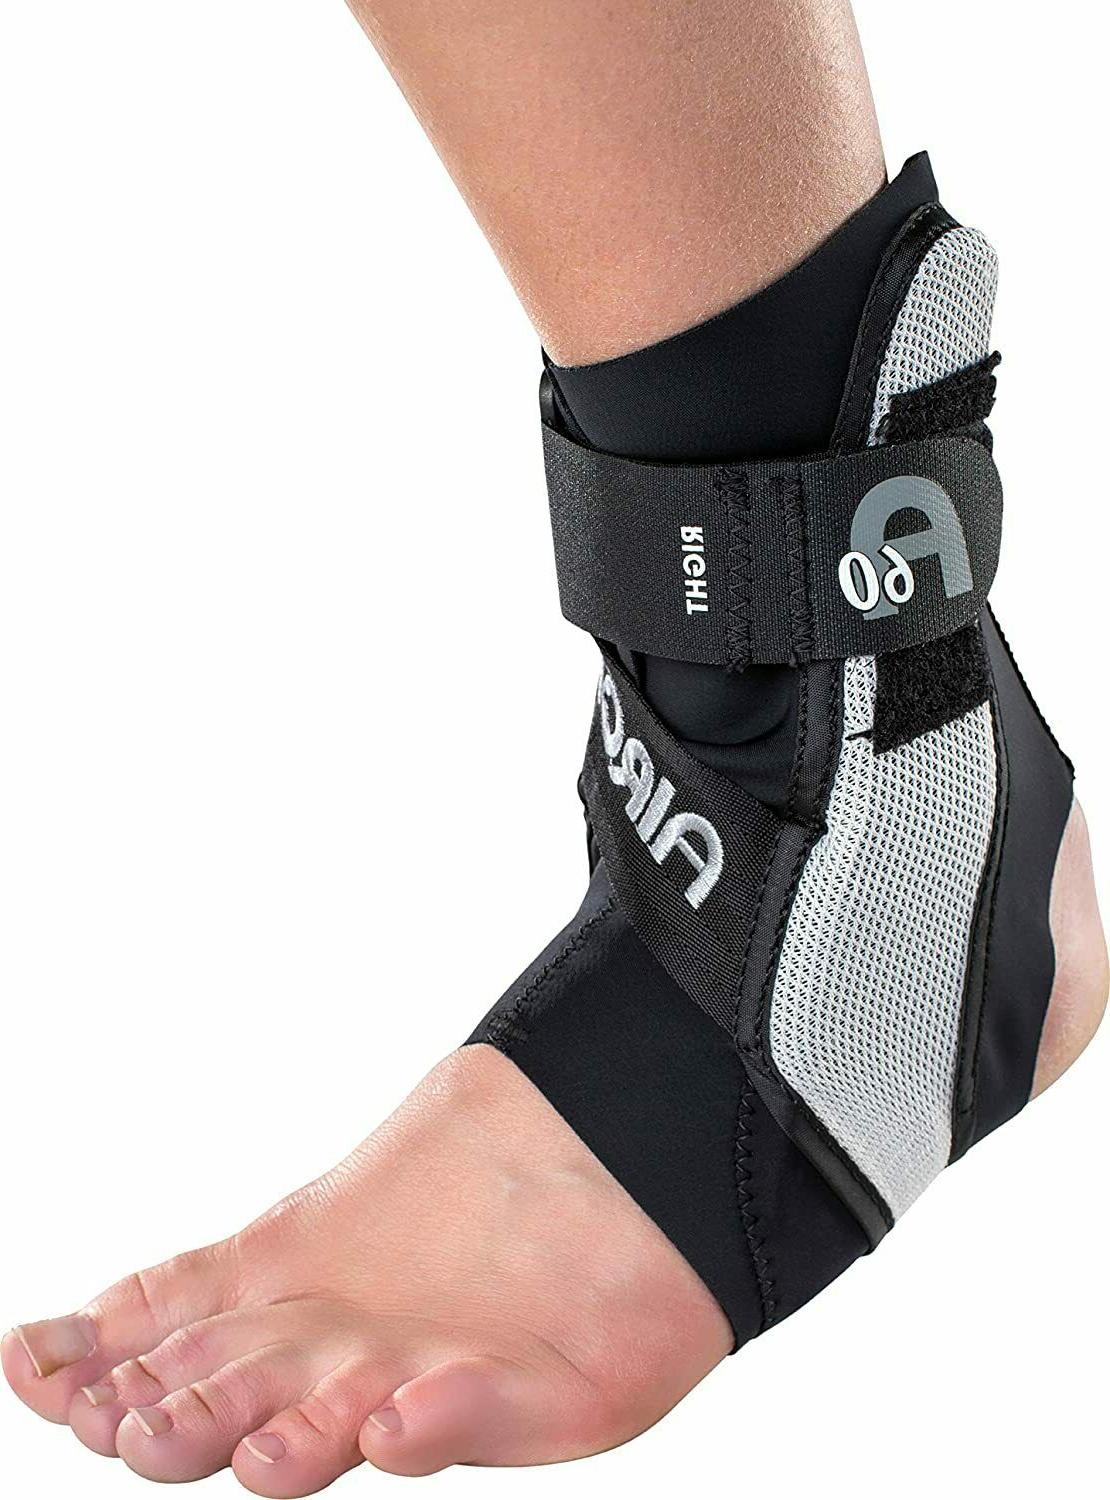 Ankle Support A60